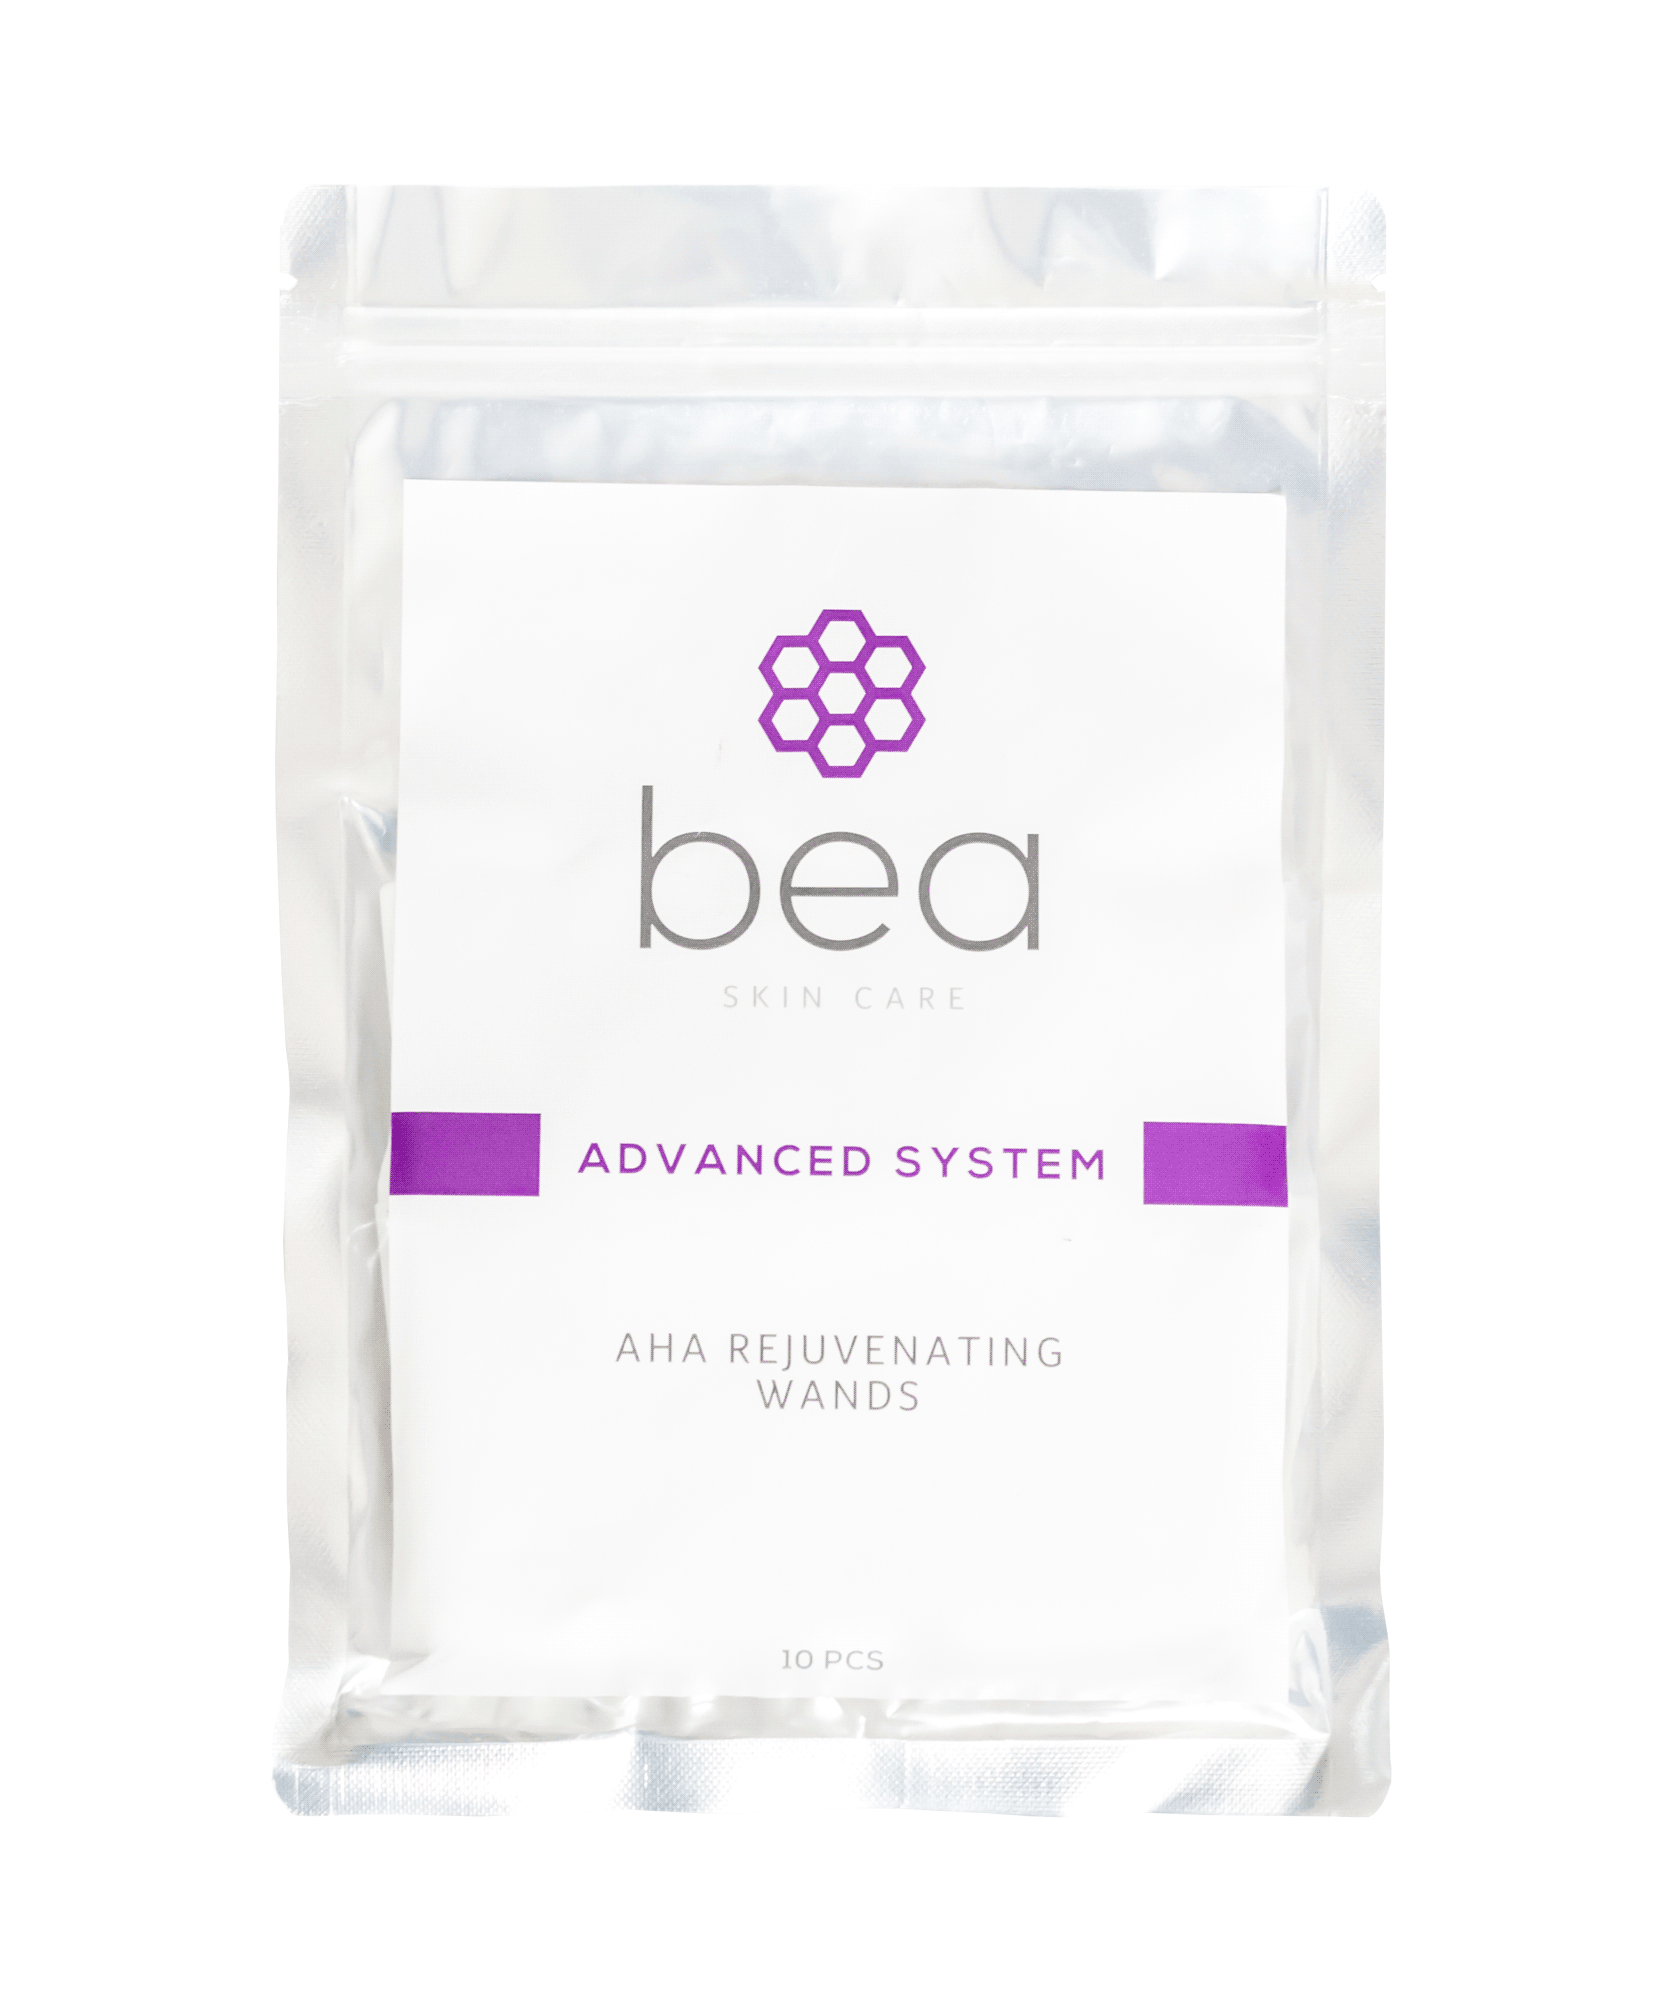 AHA Rejuvenating Wands - Pack of 10 Facial Peel bea Skin Care